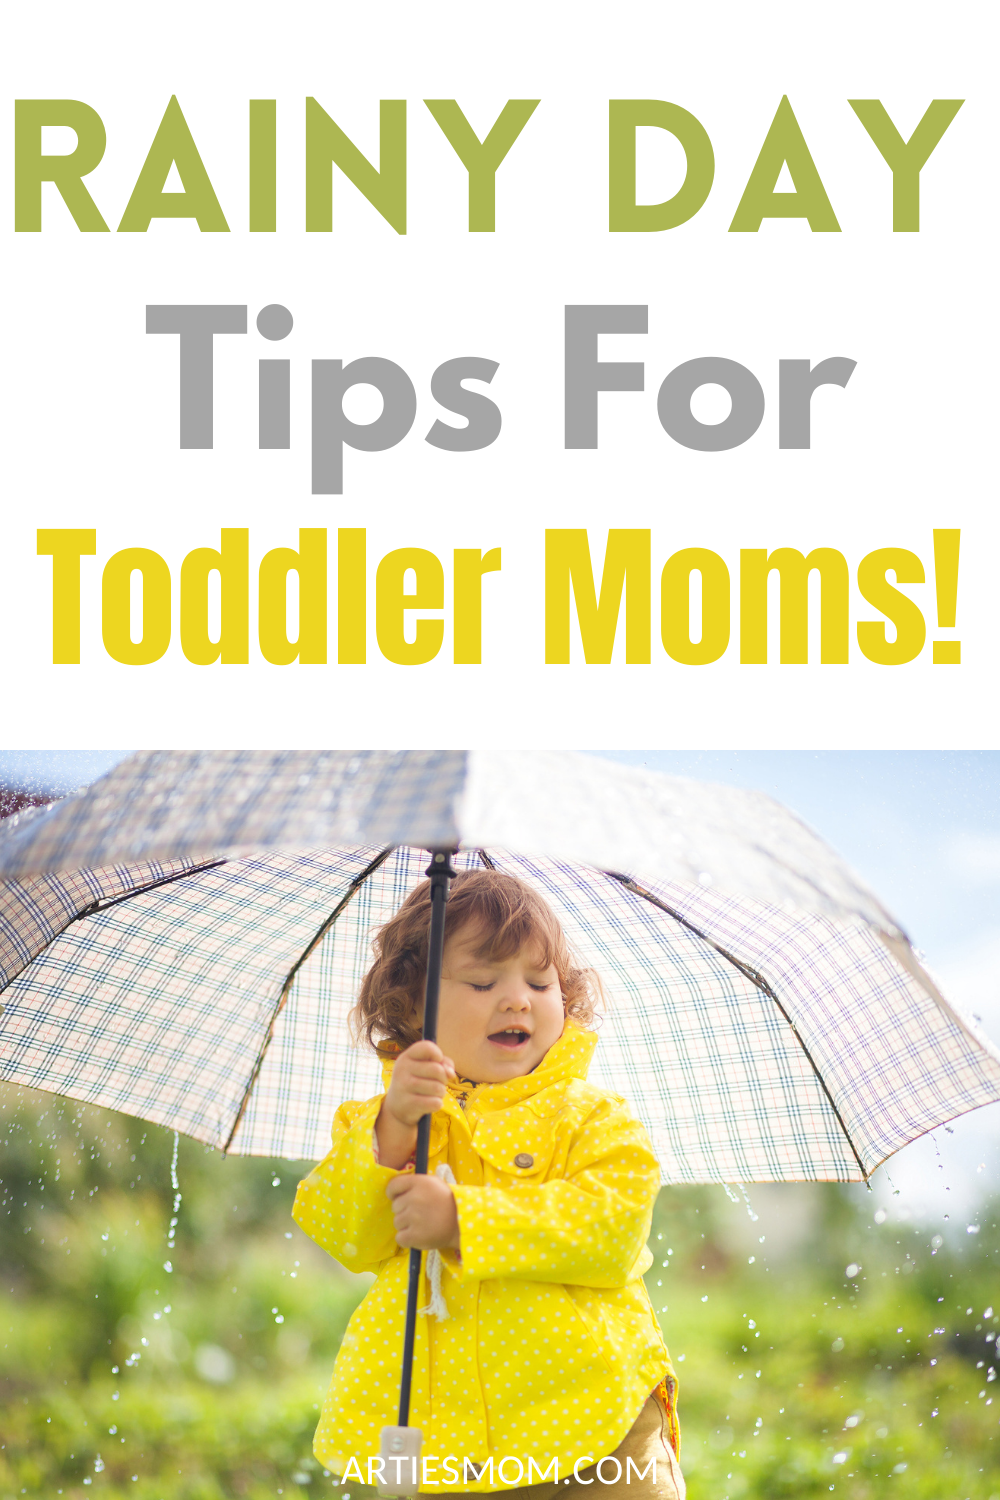 rainy day tips for toddler moms